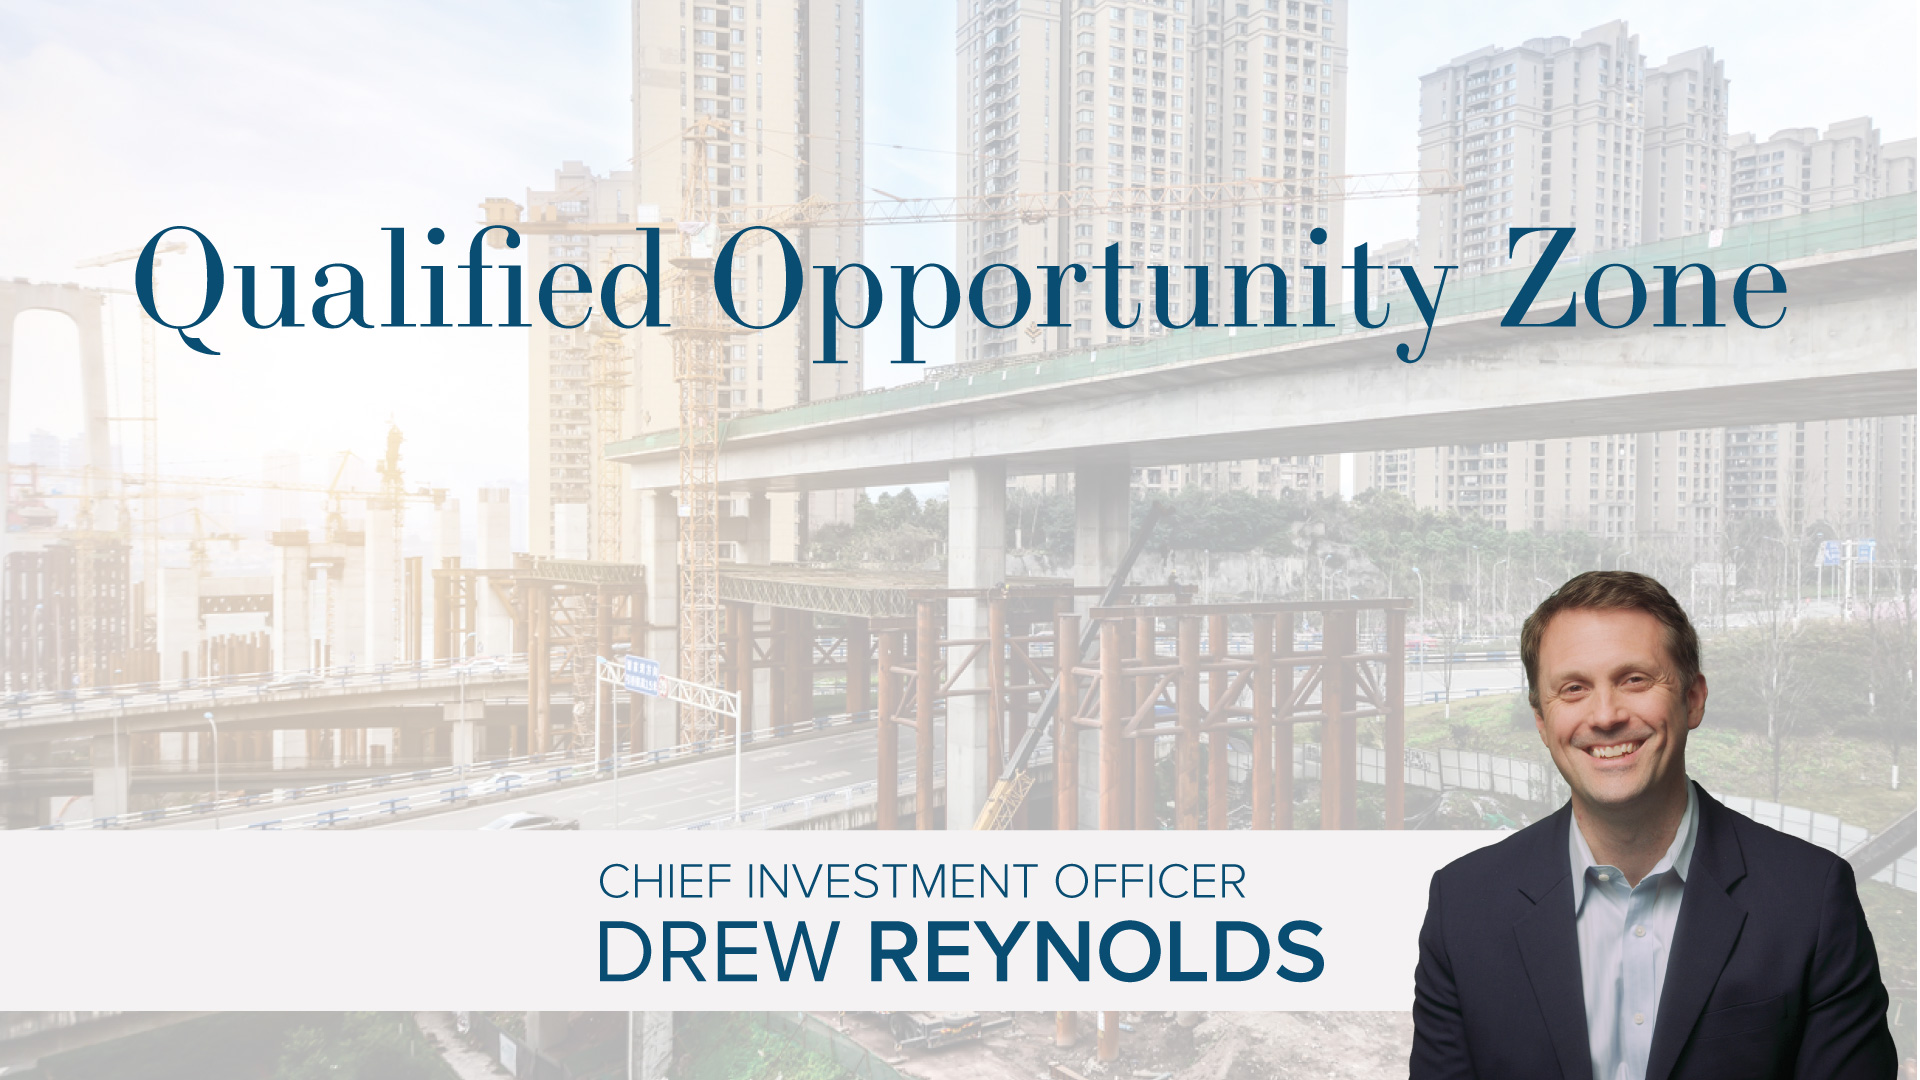 Qualified Opportunity Zones & Qualified Opportunity Funds